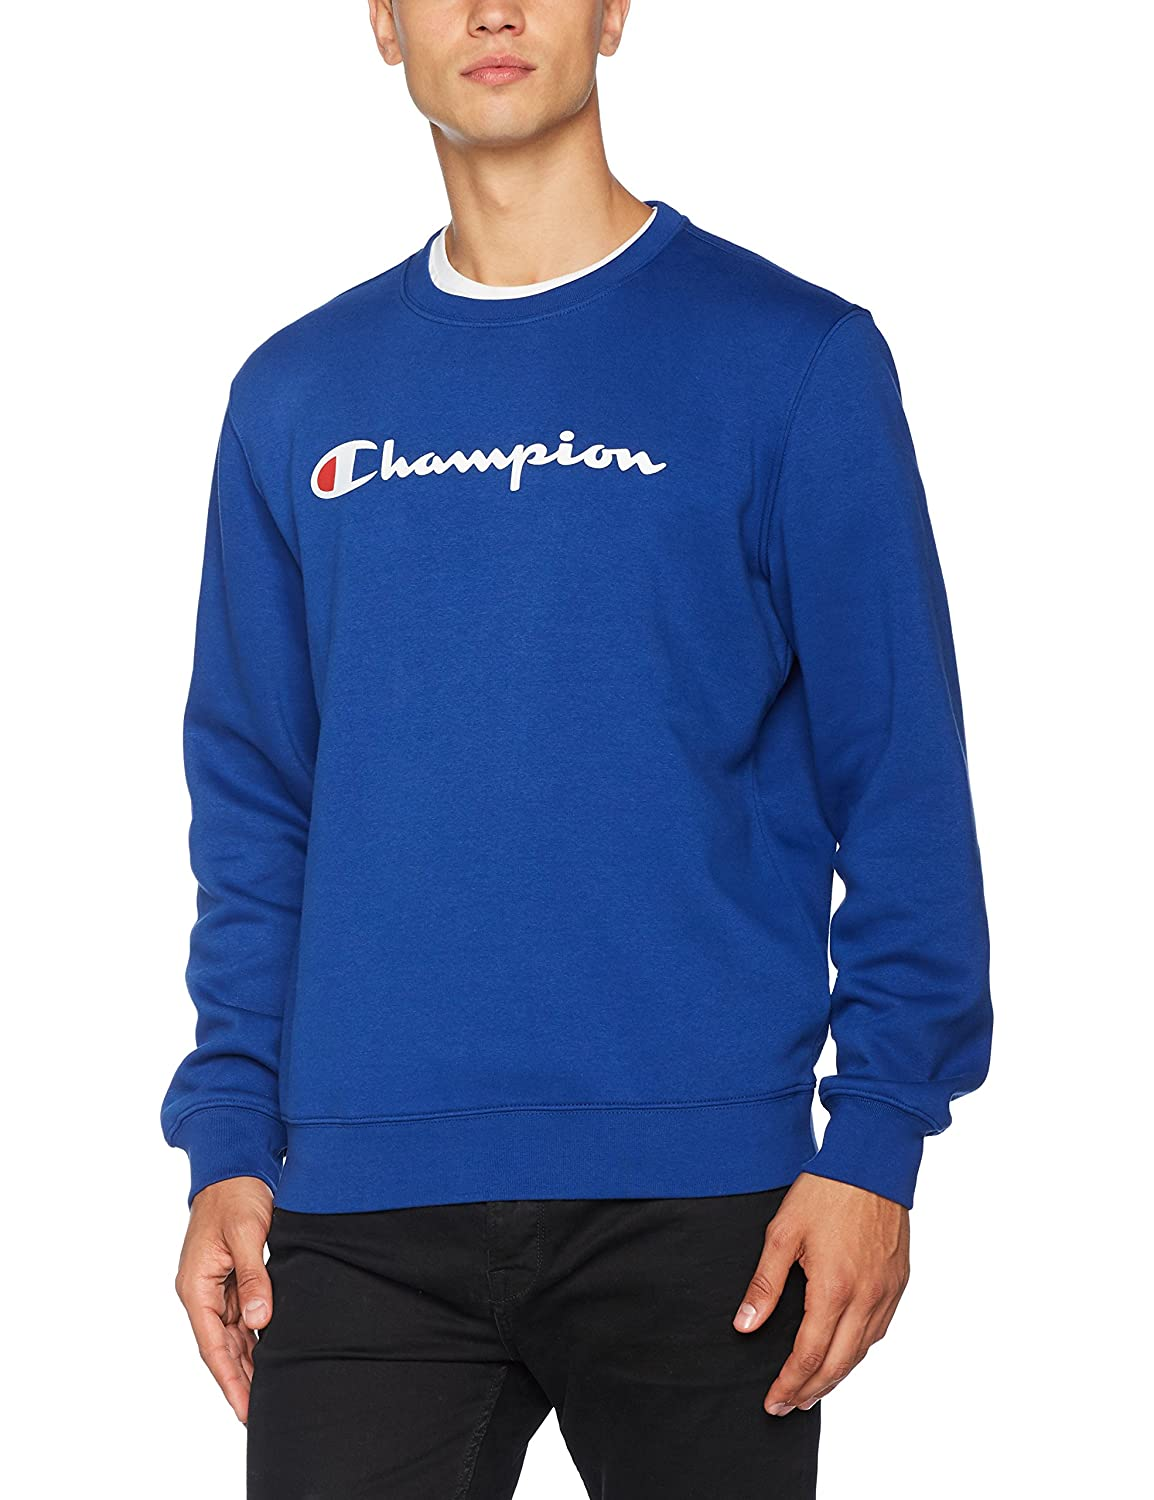 Champion Crewneck Sweatshirt-Institutionals, Felpa Uomo 210740_F17